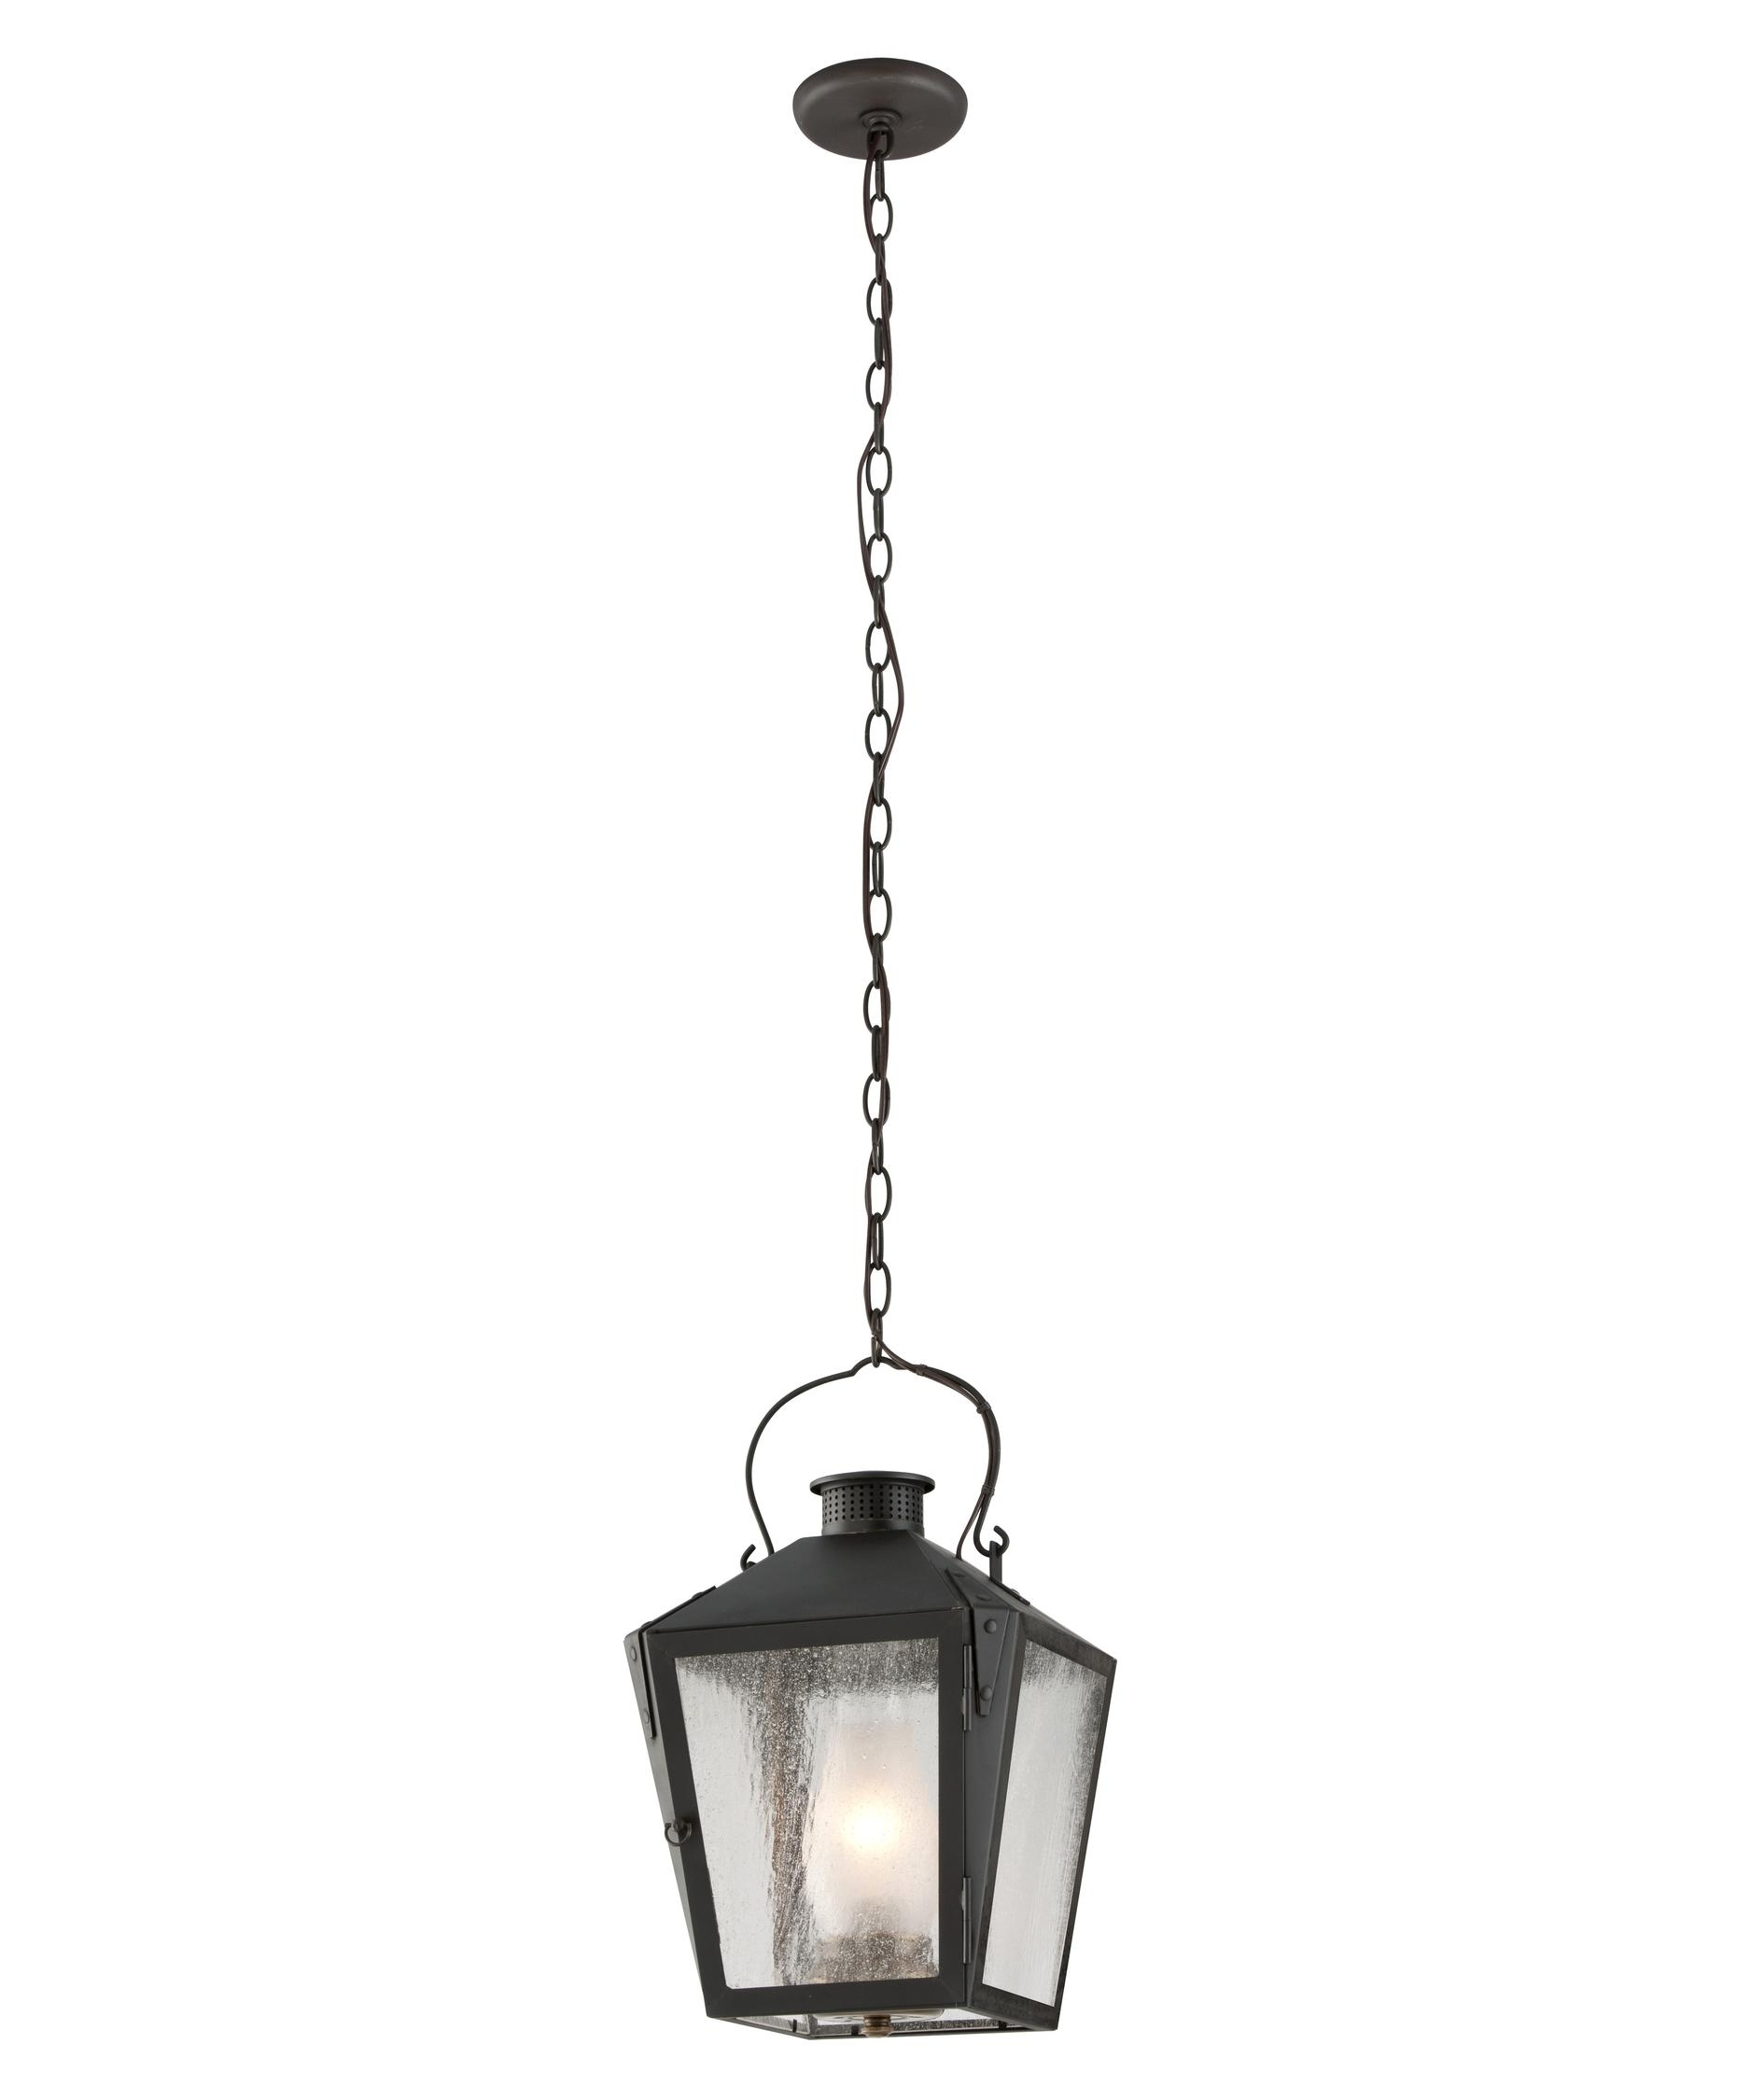 Nantucket Outdoor Lanterns Within Favorite Troy Lighting F3766 Nantucket 11 Inch Wide 1 Light Outdoor Hanging (View 13 of 20)